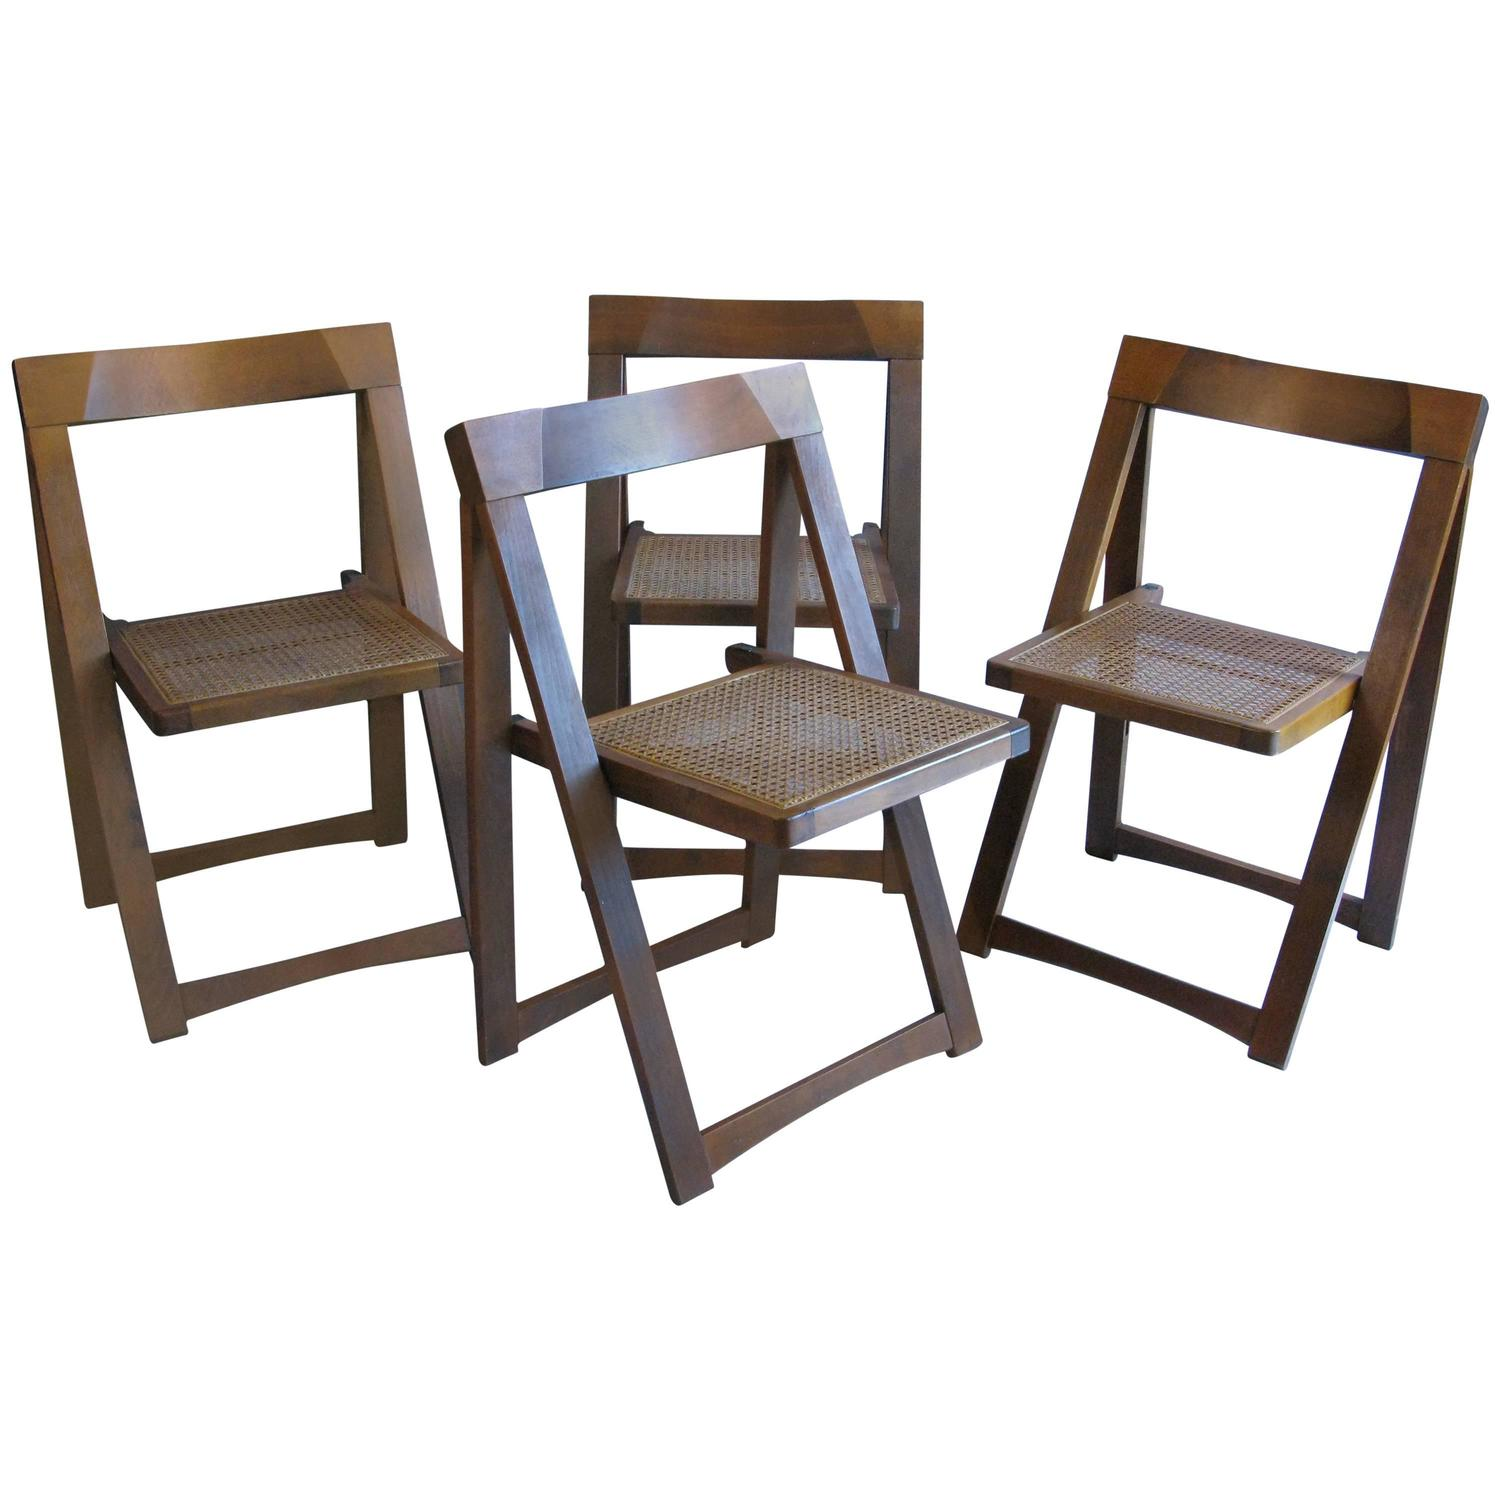 yugoslavian folding chair costco stadium set of four mid century walnut chairs with caned